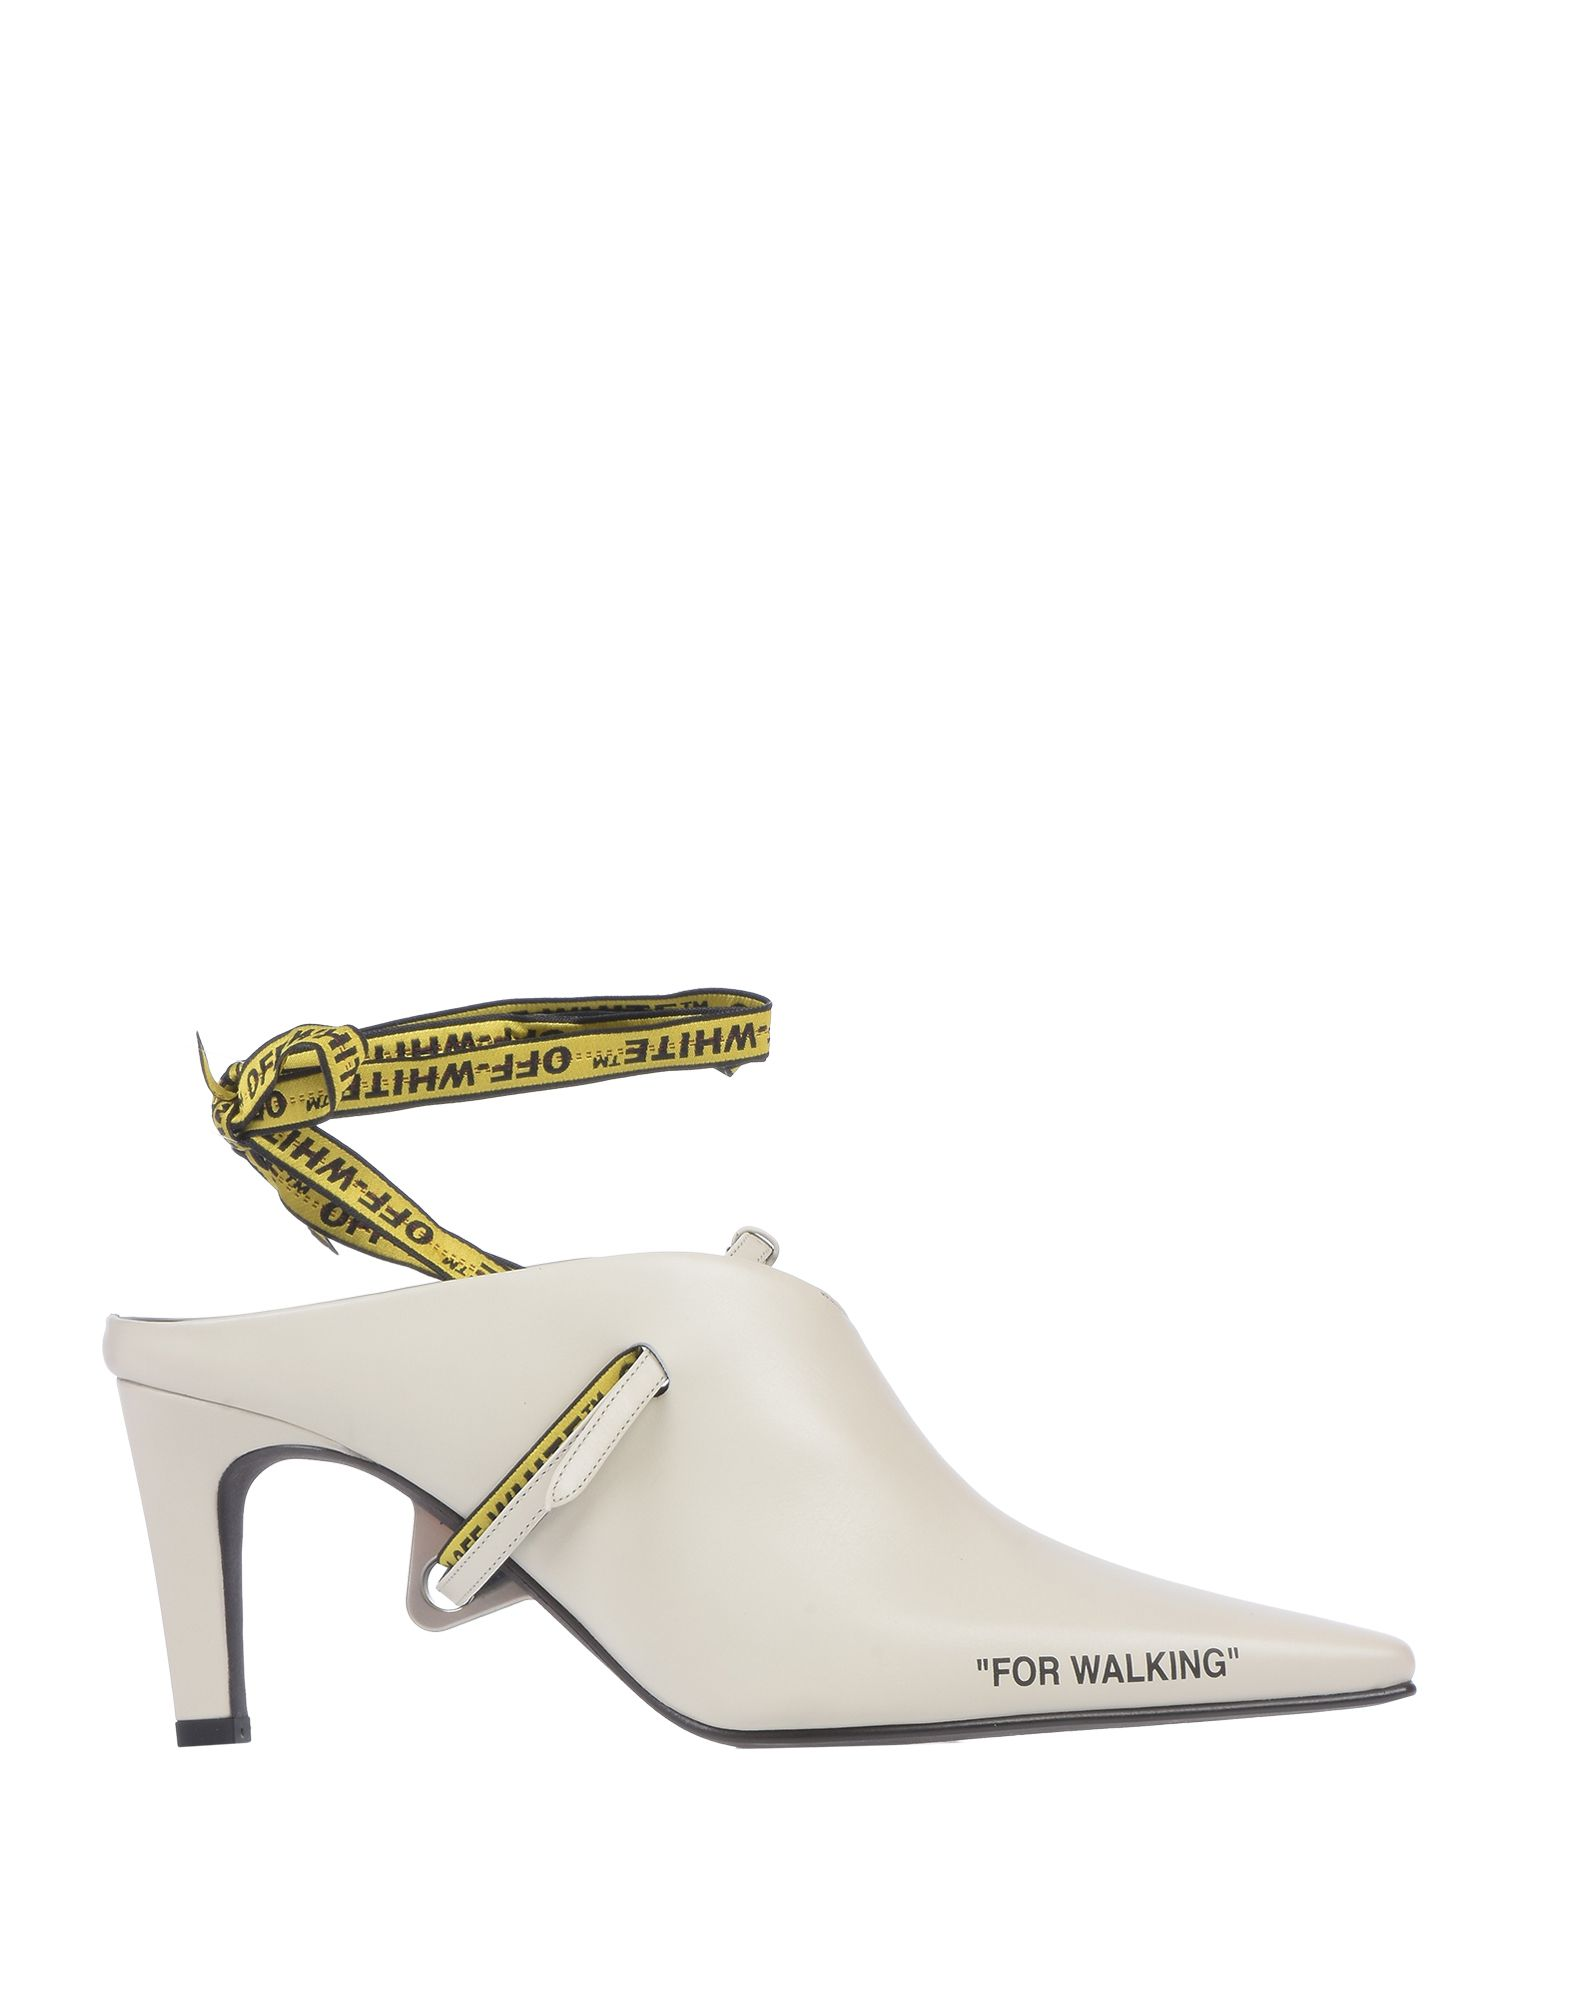 OFF-WHITE™ Pumps. Print Solid color Wrapping straps closure Narrow toeline Cone heel Covered heel Leather lining Leather sole Contains non-textile parts of animal origin Sling-backs Small sized. Soft Leather